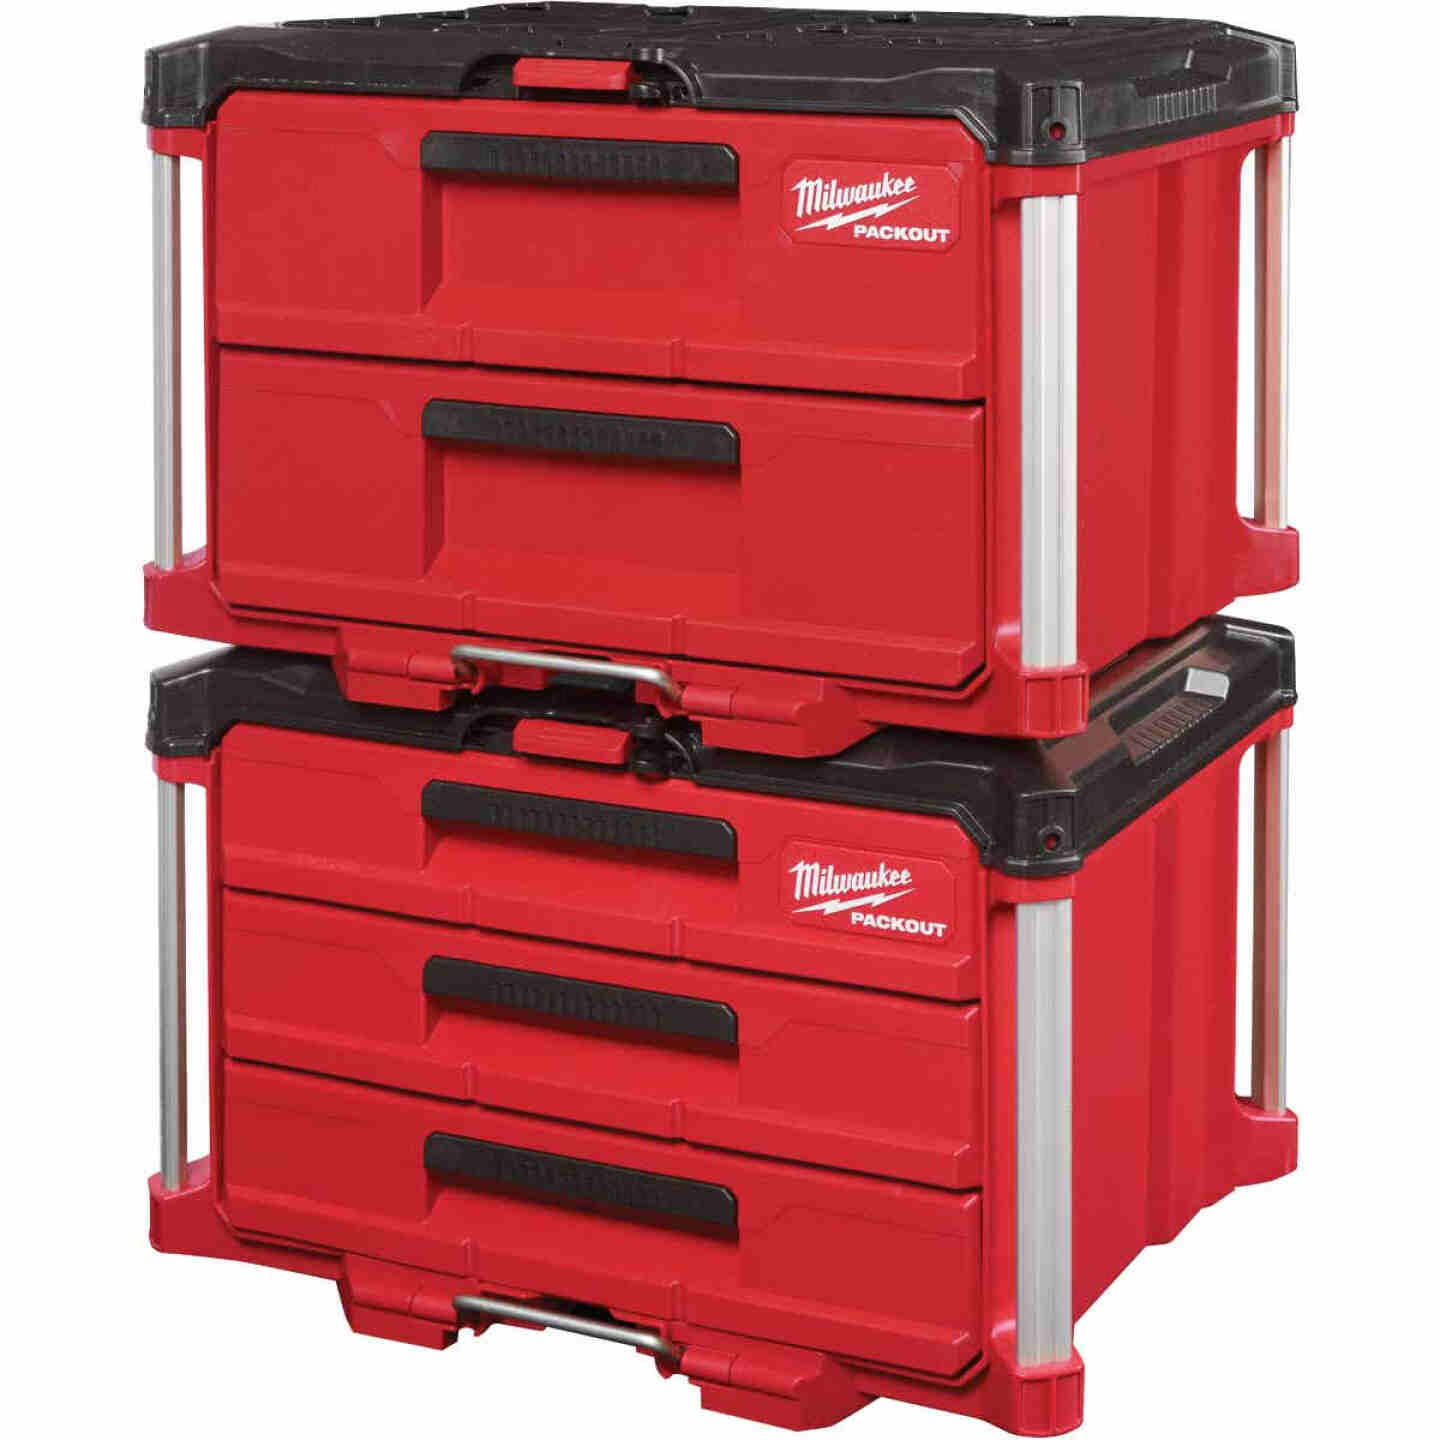 Milwaukee PACKOUT 2-Drawer Toolbox, 50 Lb. Capacity Image 4